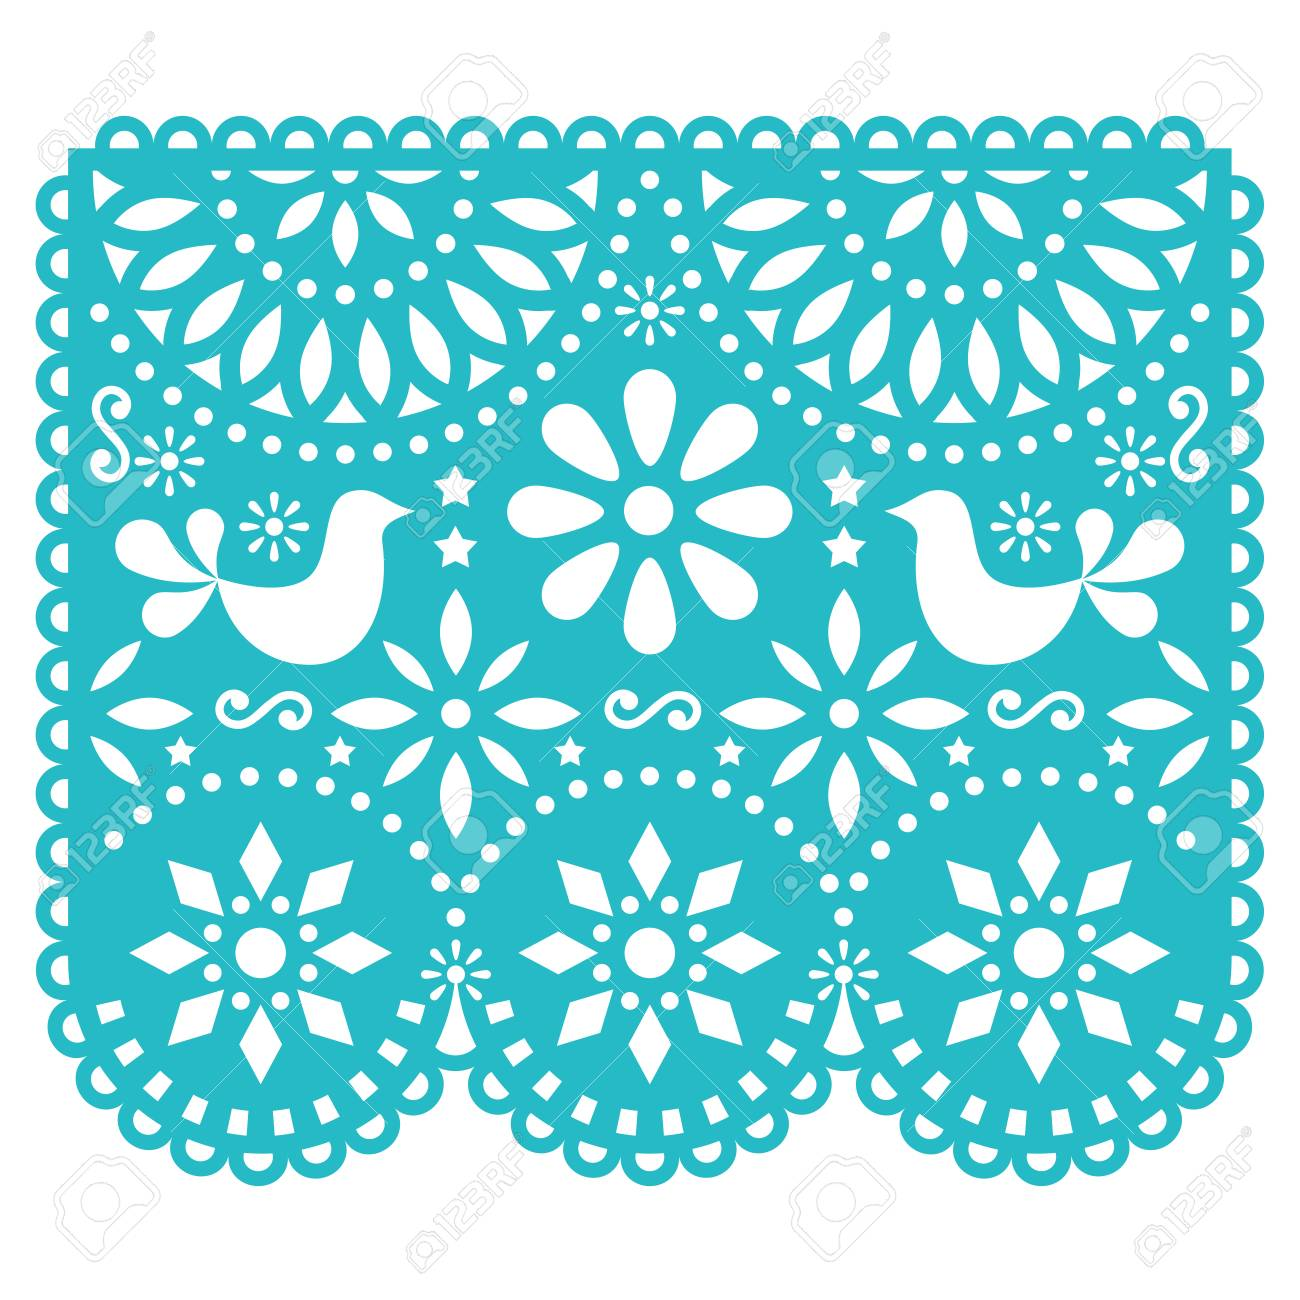 Papel Picado vector design template, Mexican paper decorations with flowers and birds, traditional fiesta banner in turquoise - 86814938